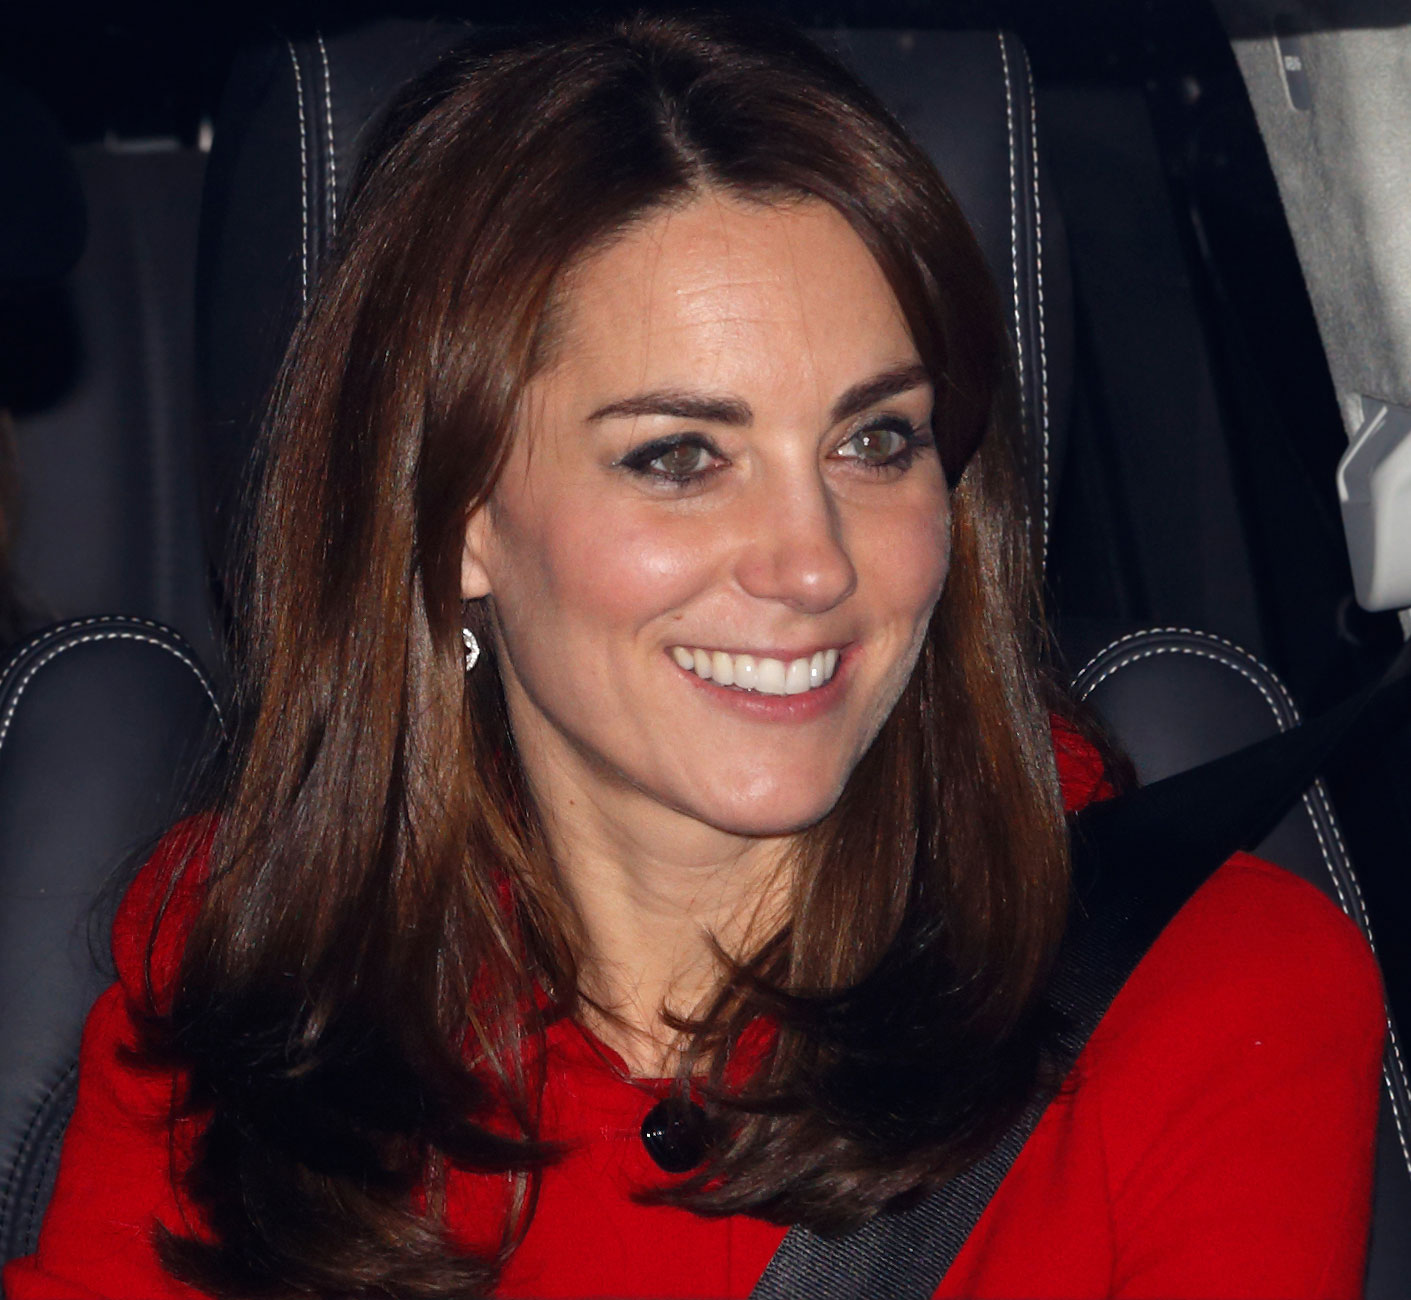 LONDON, UNITED KINGDOM - DECEMBER 16: (EMBARGOED FOR PUBLICATION IN UK NEWSPAPERS UNTIL 48 HOURS AFTER CREATE DATE AND TIME) Catherine, Duchess of Cambridge attends a Christmas lunch for members of the Royal Family hosted by Queen Elizabeth II at Buckingham Palace on December 16, 2015 in London, England. (Photo by Max Mumby/Indigo/Getty Images)